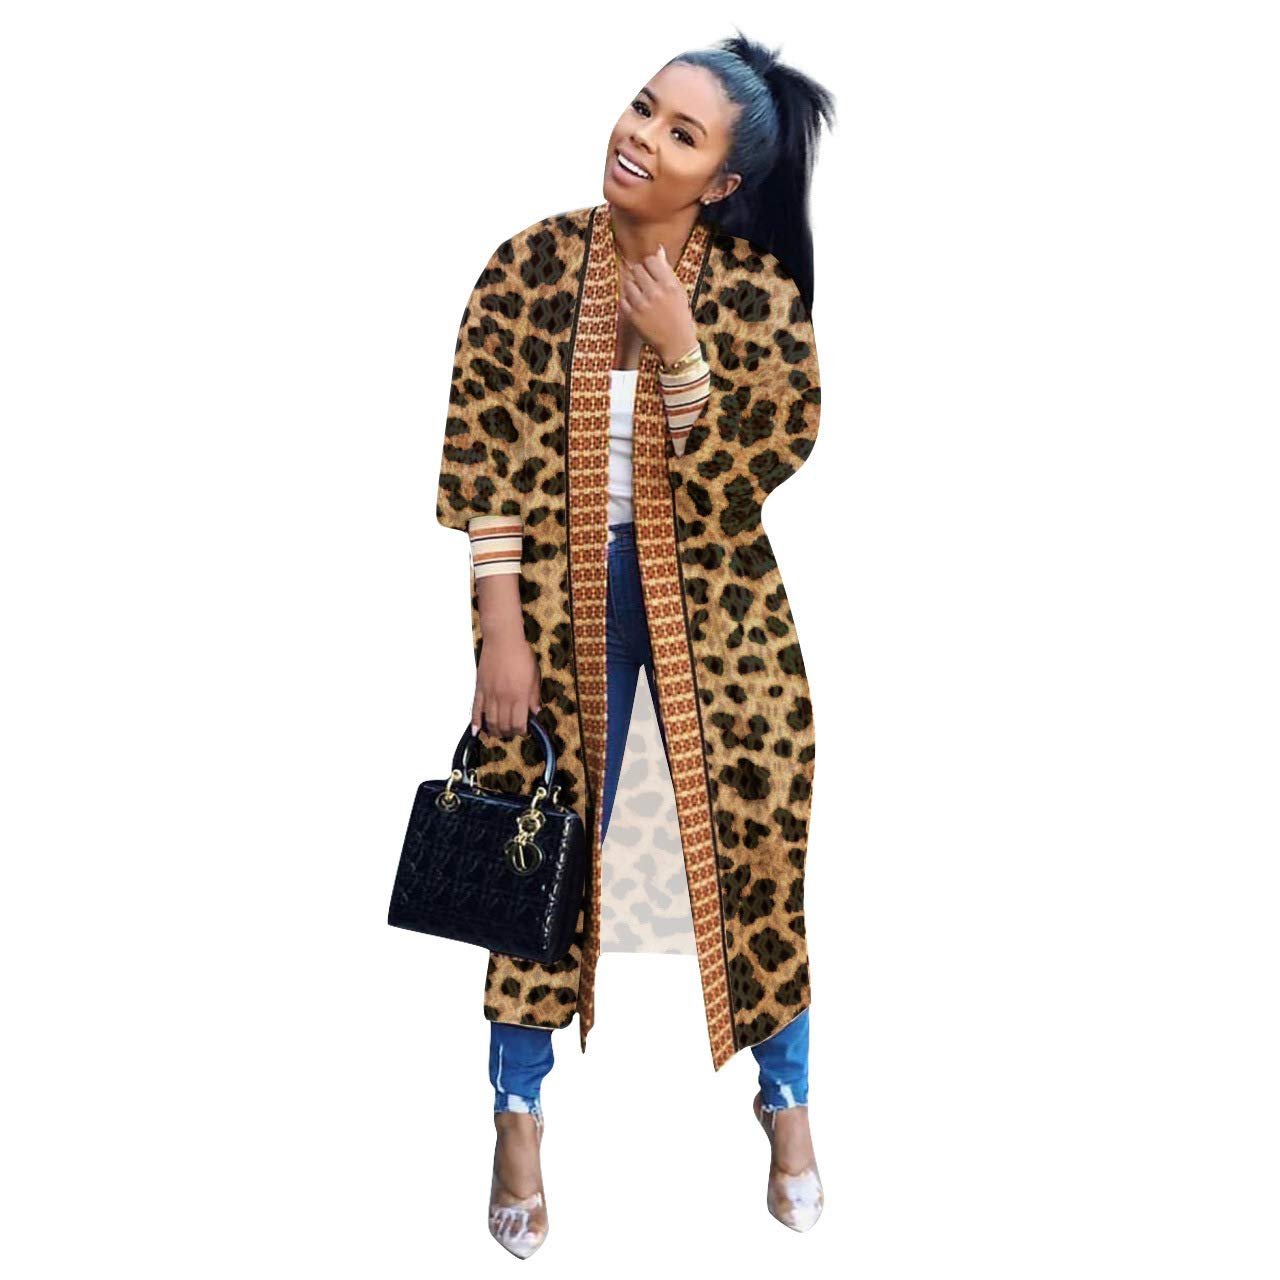 Women's Cardigan Jacket Totem Print Casual 3/4 Sleeve Duster Outer Long Trench Coat